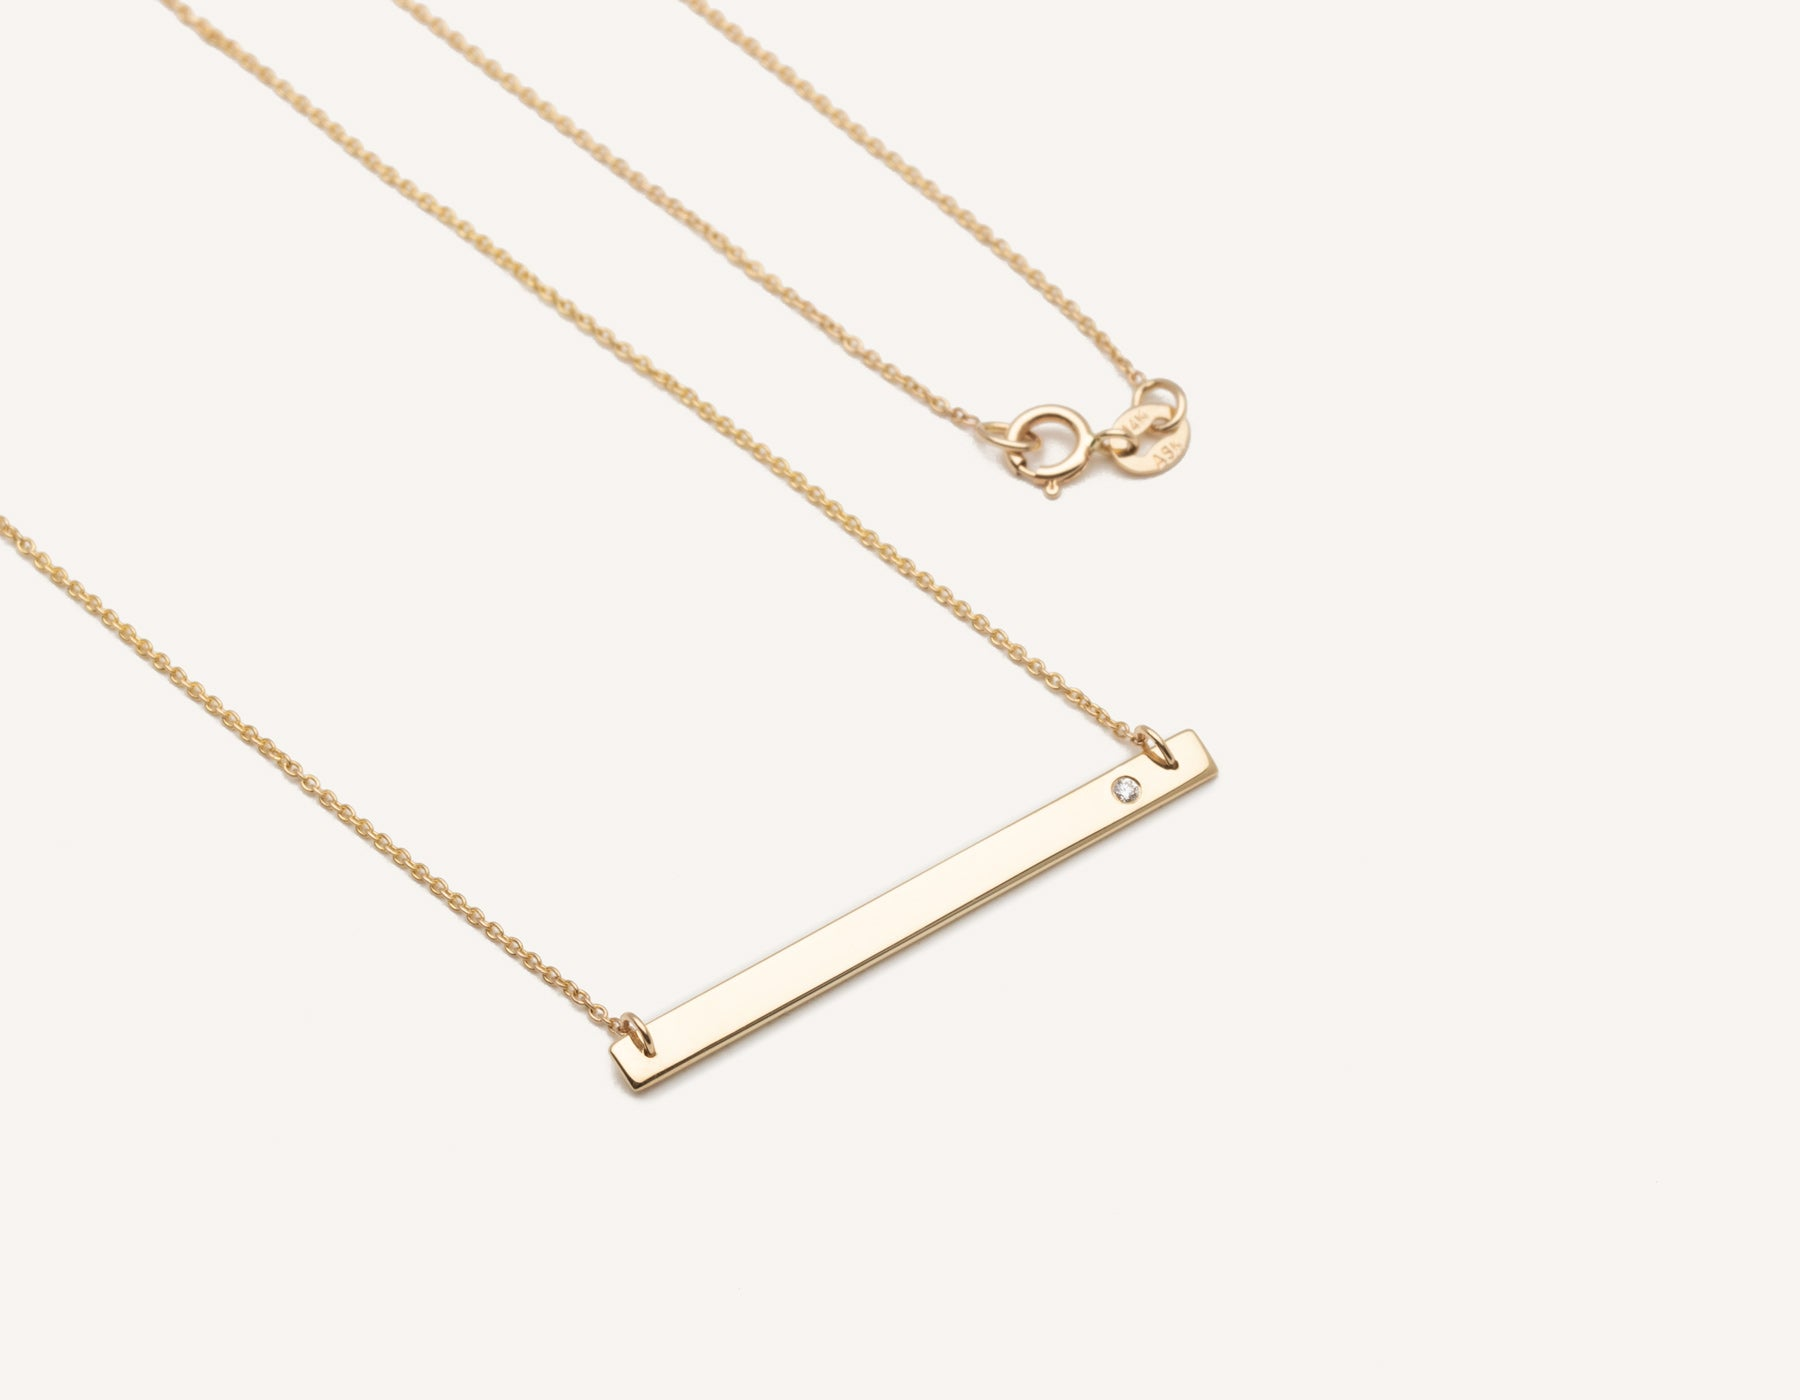 Simple personalized engraving 14k solid gold Bar Necklace with Diamond on minimalist chain by Vrai & Oro sustainable jewelry, 14K Yellow Gold